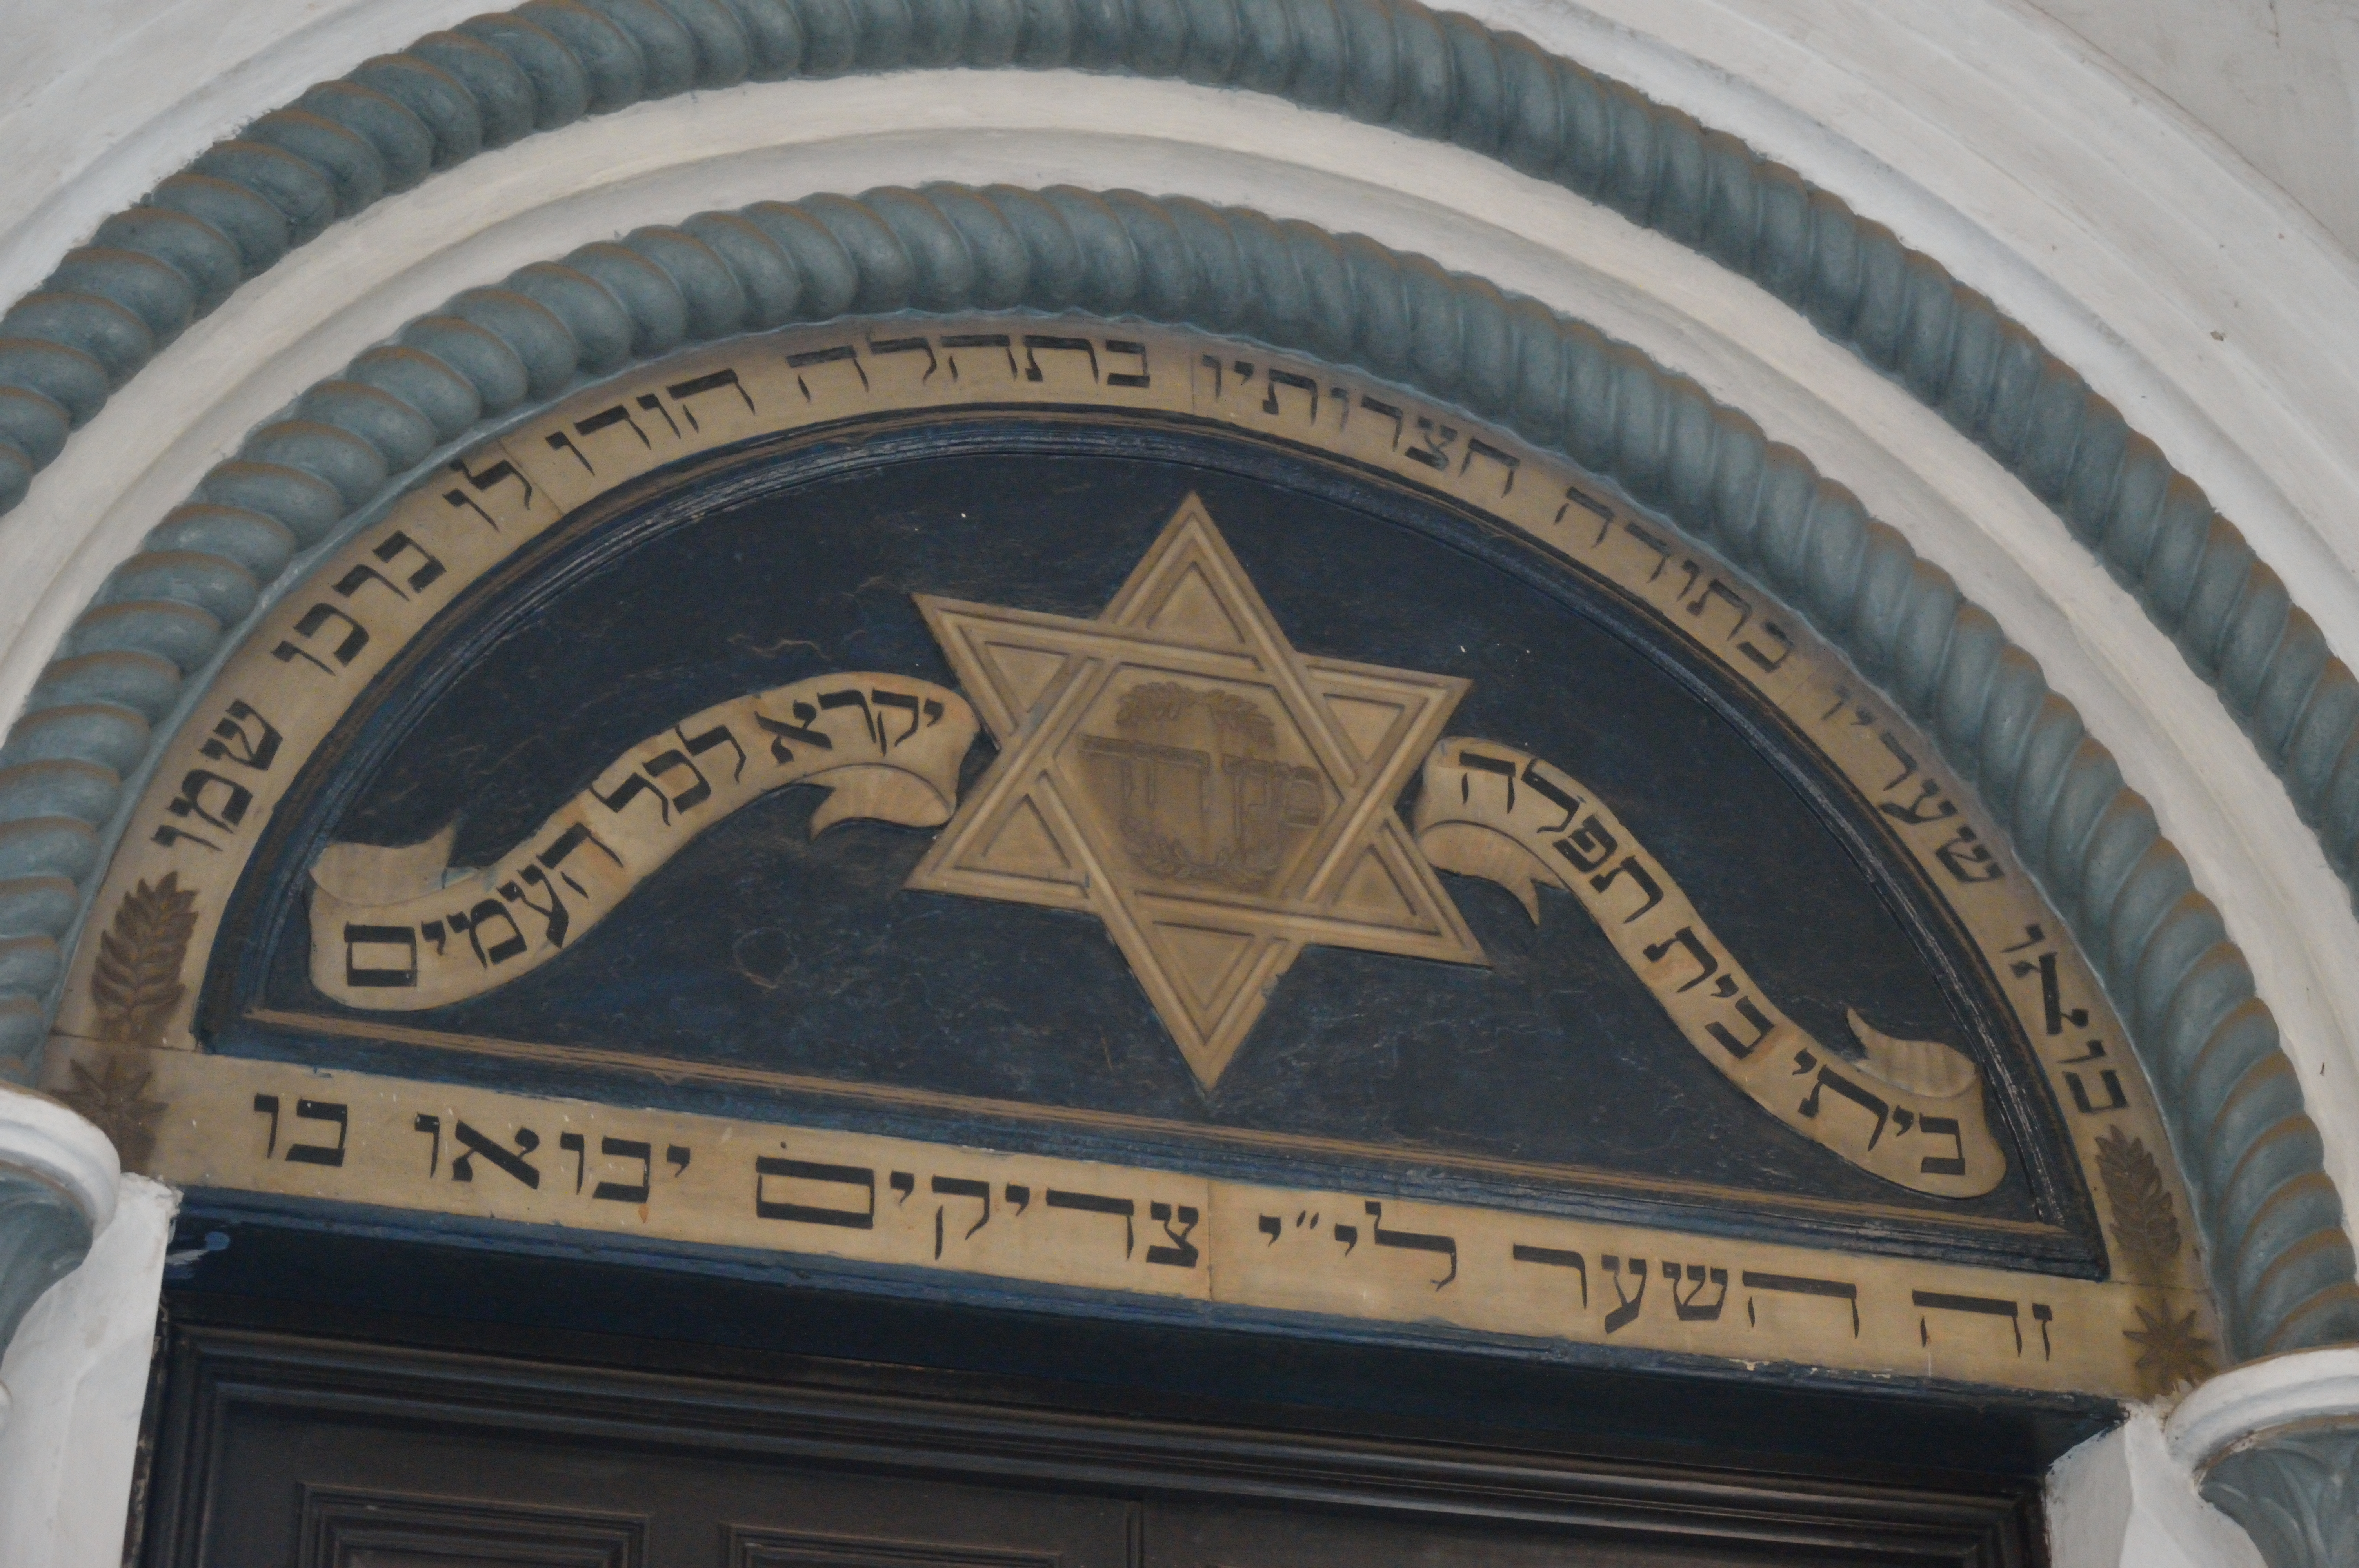 FileDoor Top Inscription - Magen David Synagogue - Kolkata 2013-03-03 & File:Door Top Inscription - Magen David Synagogue - Kolkata 2013-03 ...